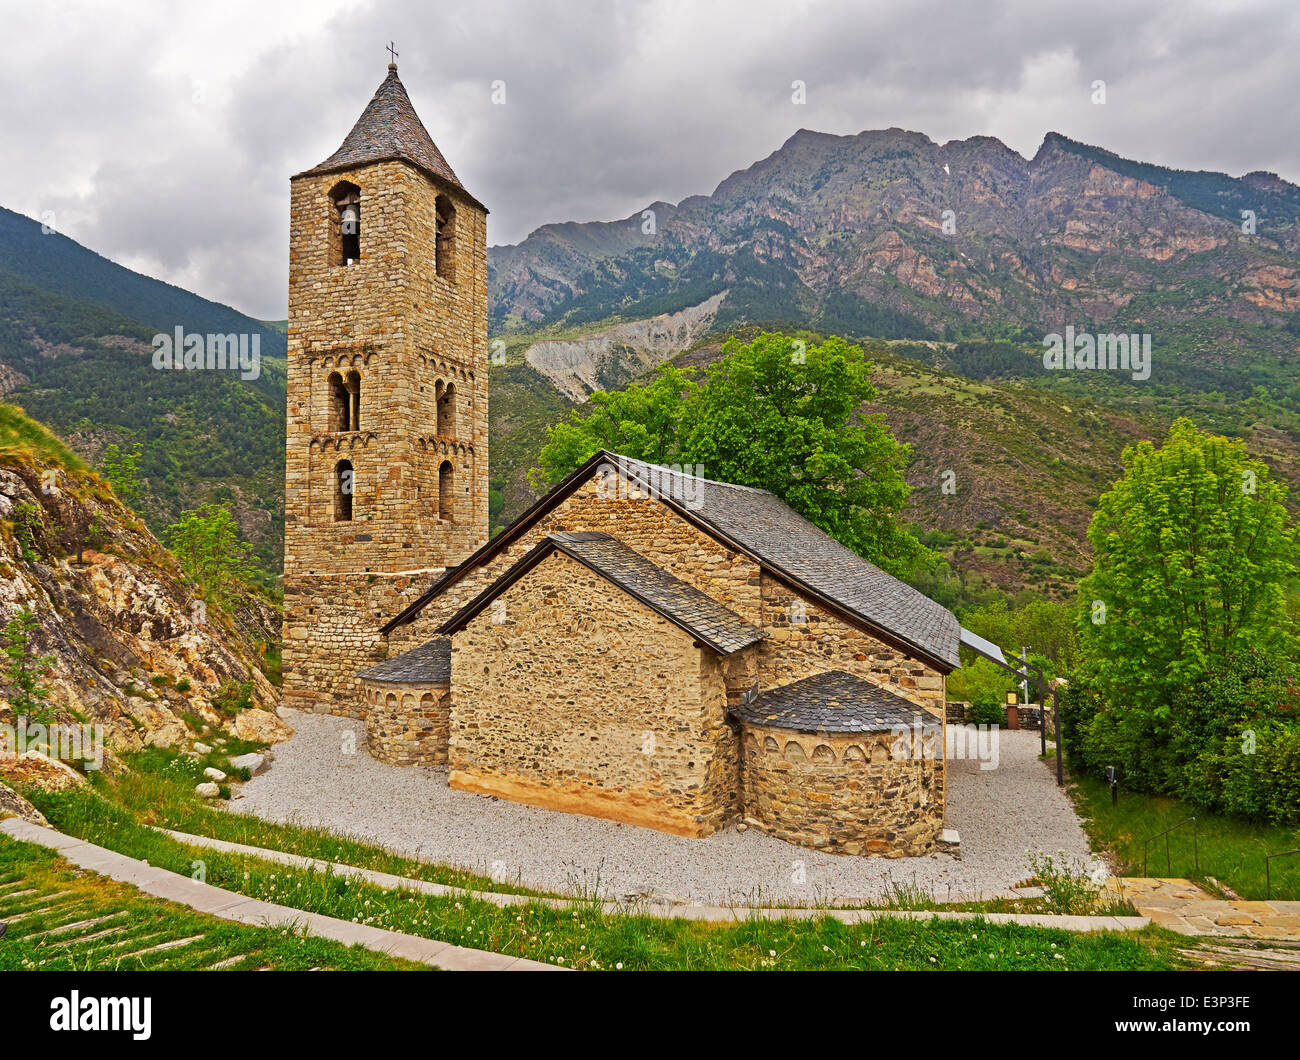 Church of Saint Joan de Boi in the Vall de Boi, Spain. One of 9 Early Romanesque churches a remote valley in the - Stock Image